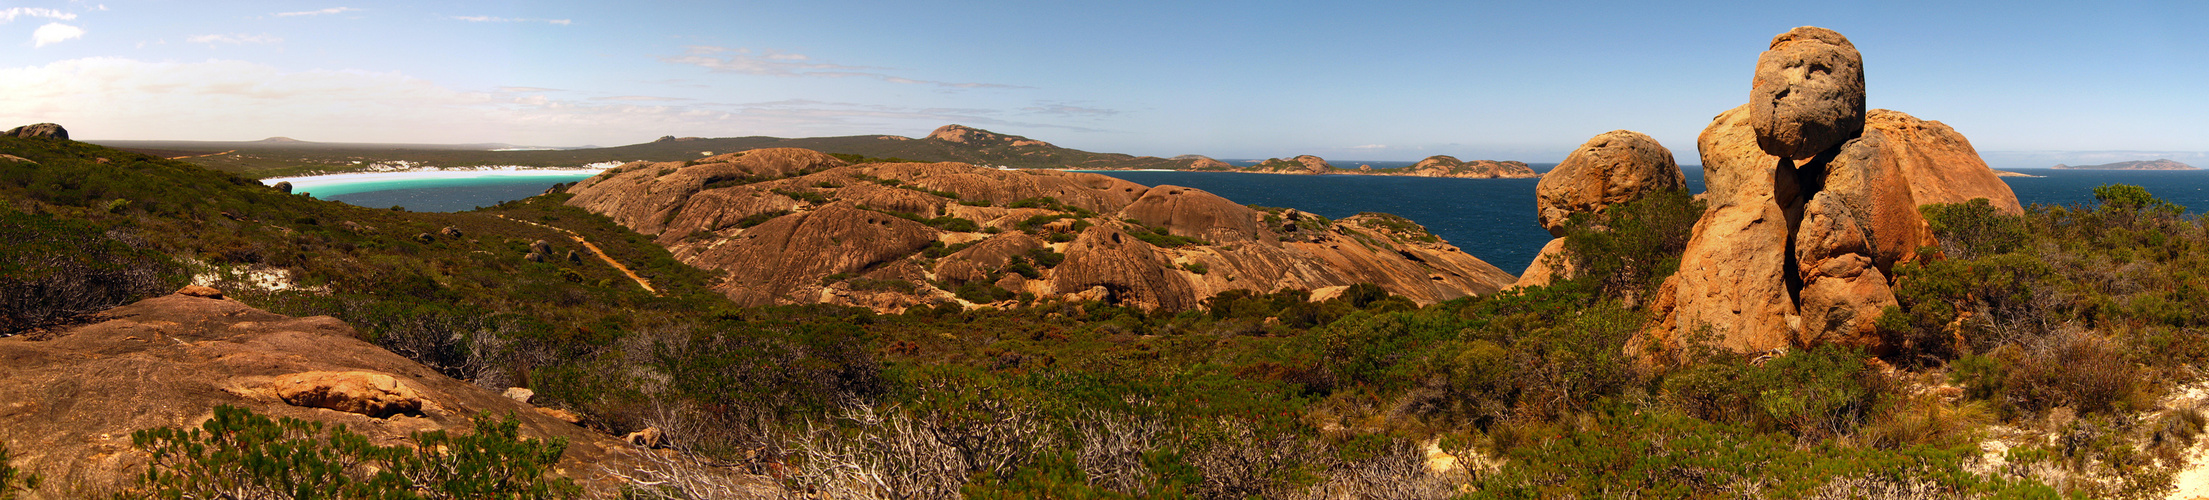 Bush Walk - Lucky Bay to Thistle Cove - Panorama